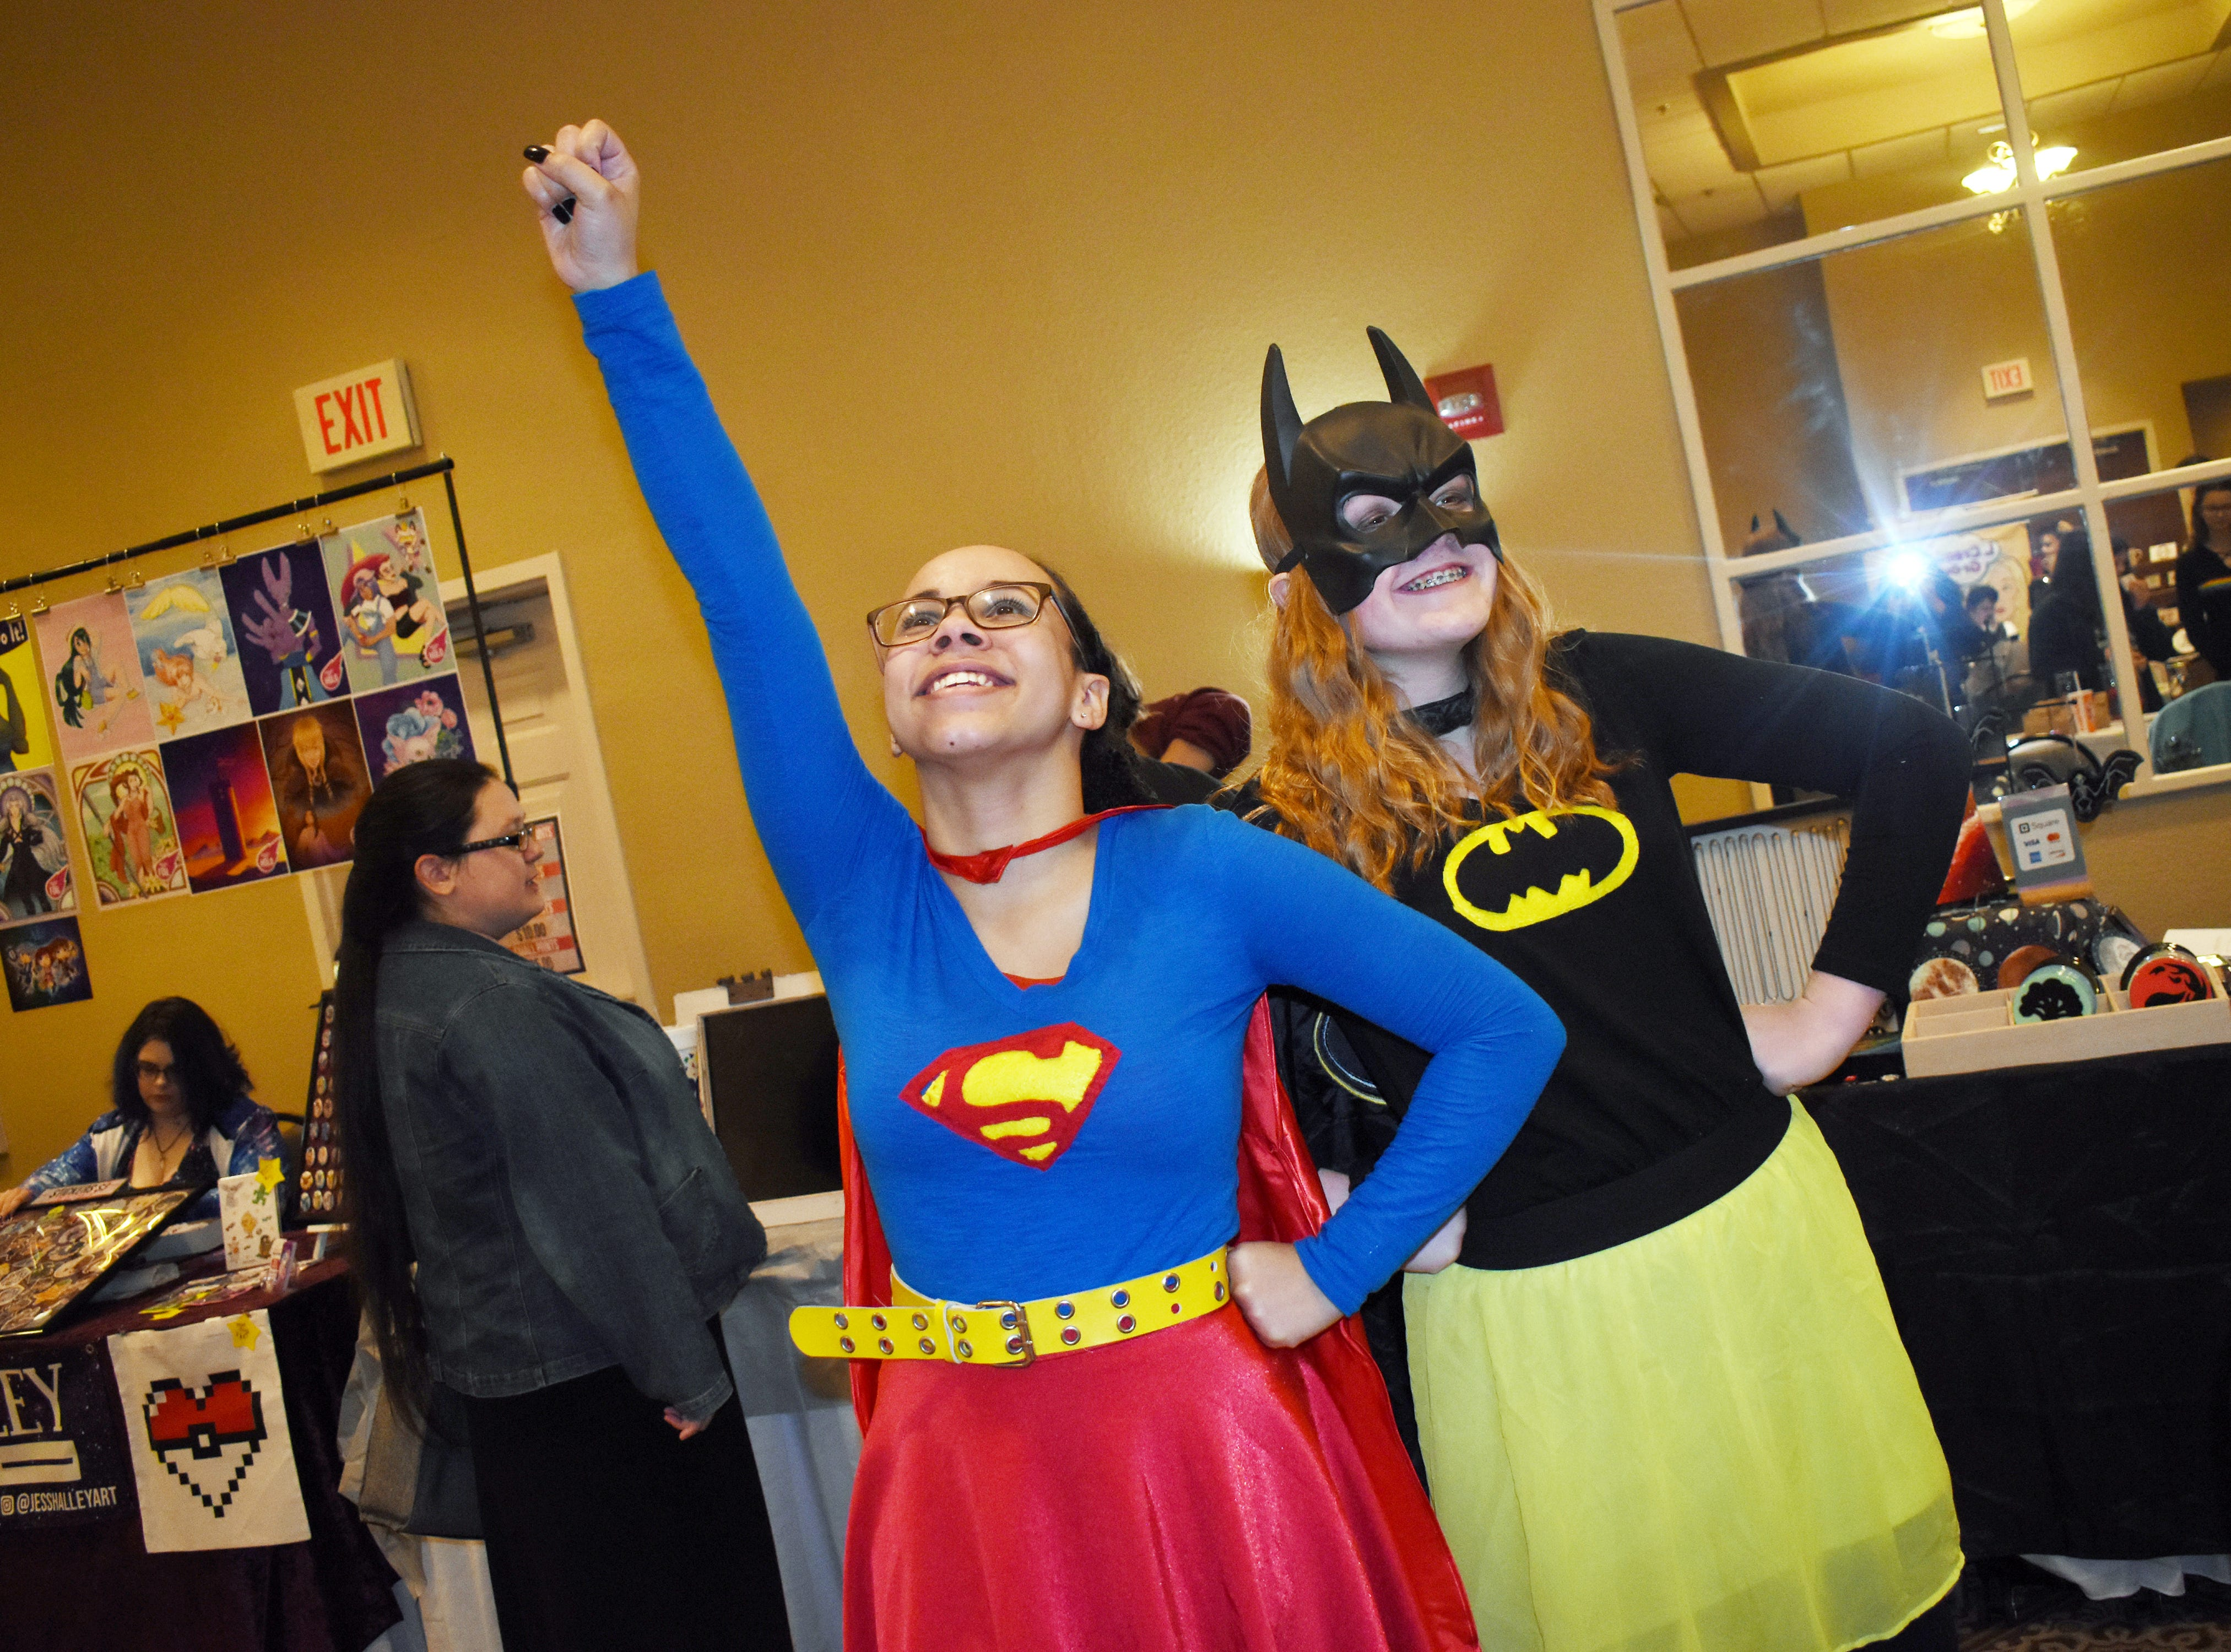 Dressed as Supergirl and Batgirl, Rylee Garrison (left) and Abby Fisher strike poses at Creative Con 2019 held Saturday, Feb. 9, 2019 at the Best Western Inn & Suites on North MacArthur Drive. Creative Con is sponsored by the Rapides Parish Library and caters to all creative interests such as books, cosplay, gaming, art, steampunk, 3D printing and more. Among the panel discussions were a talk about acting and the acting business by Alexandria actor and stylist Dan Forest, and  discussions about magic by magician David Lebeouf, Doctor Who by Jack Sawtelle and writing by Christee Atwood. Other events included a costume contest, trivia games and play fighting by the Society for Creative Anarchronism.